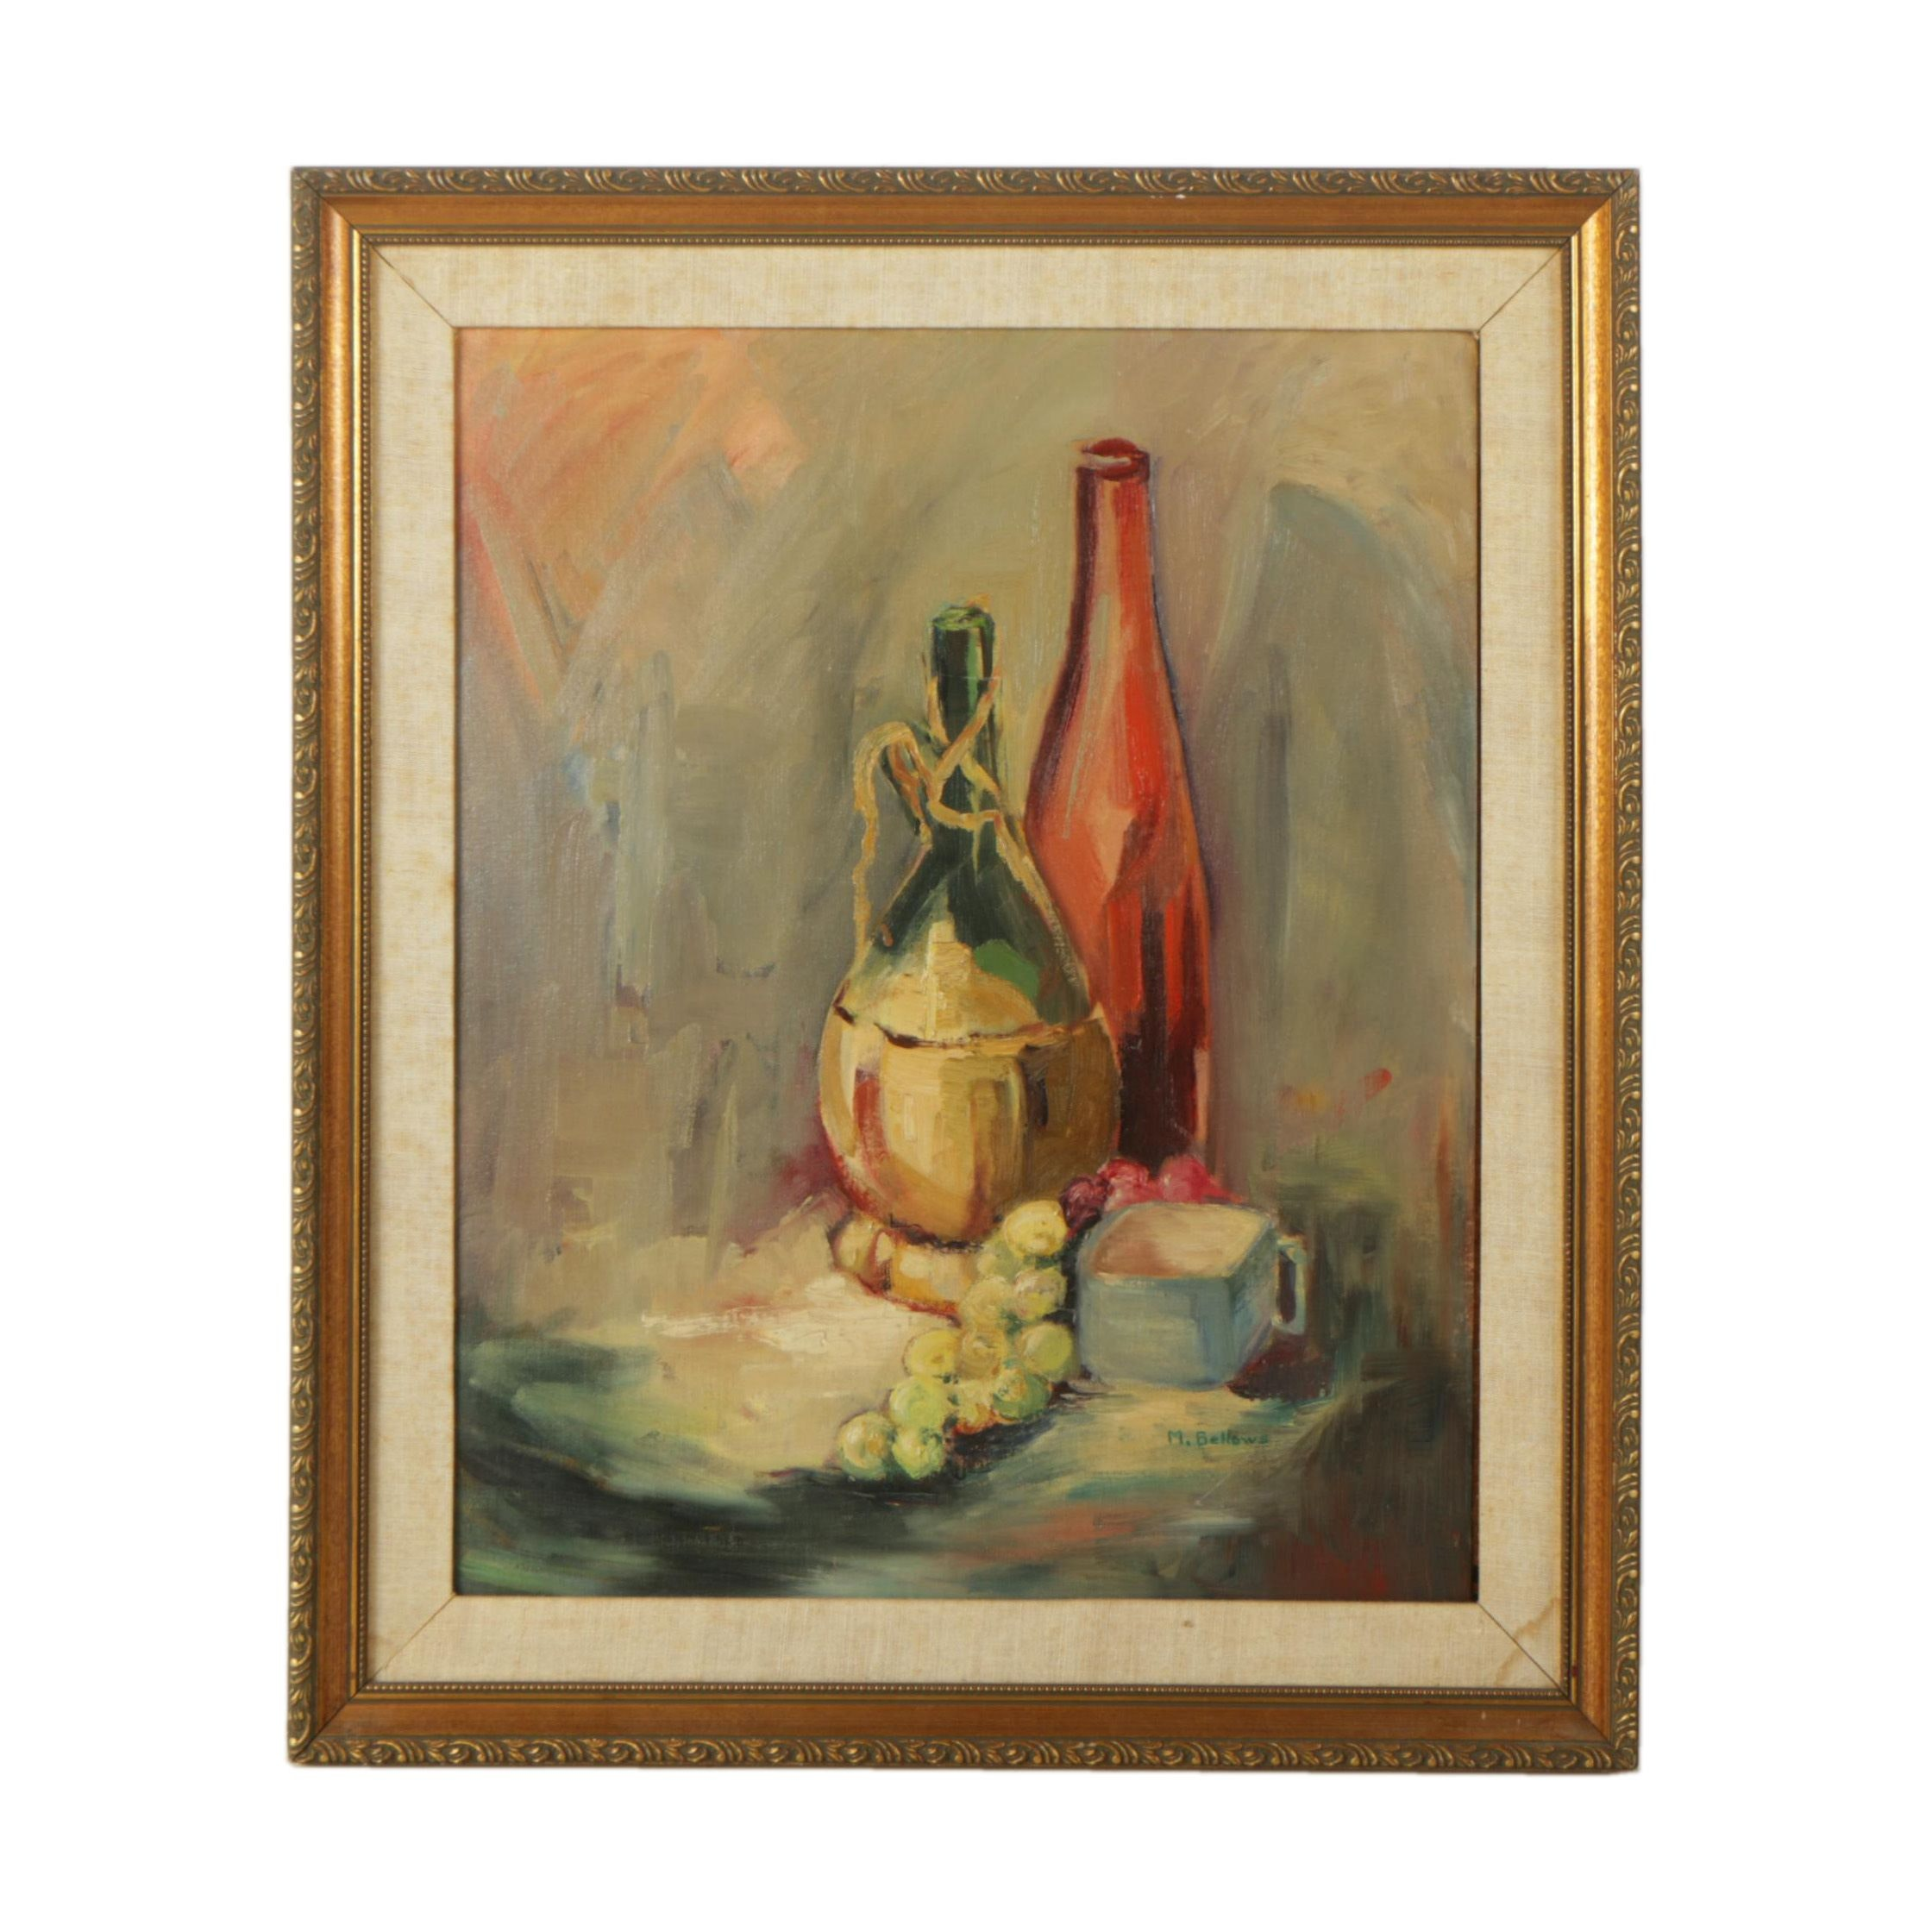 M. Bellows Oil Painting of a Still Life